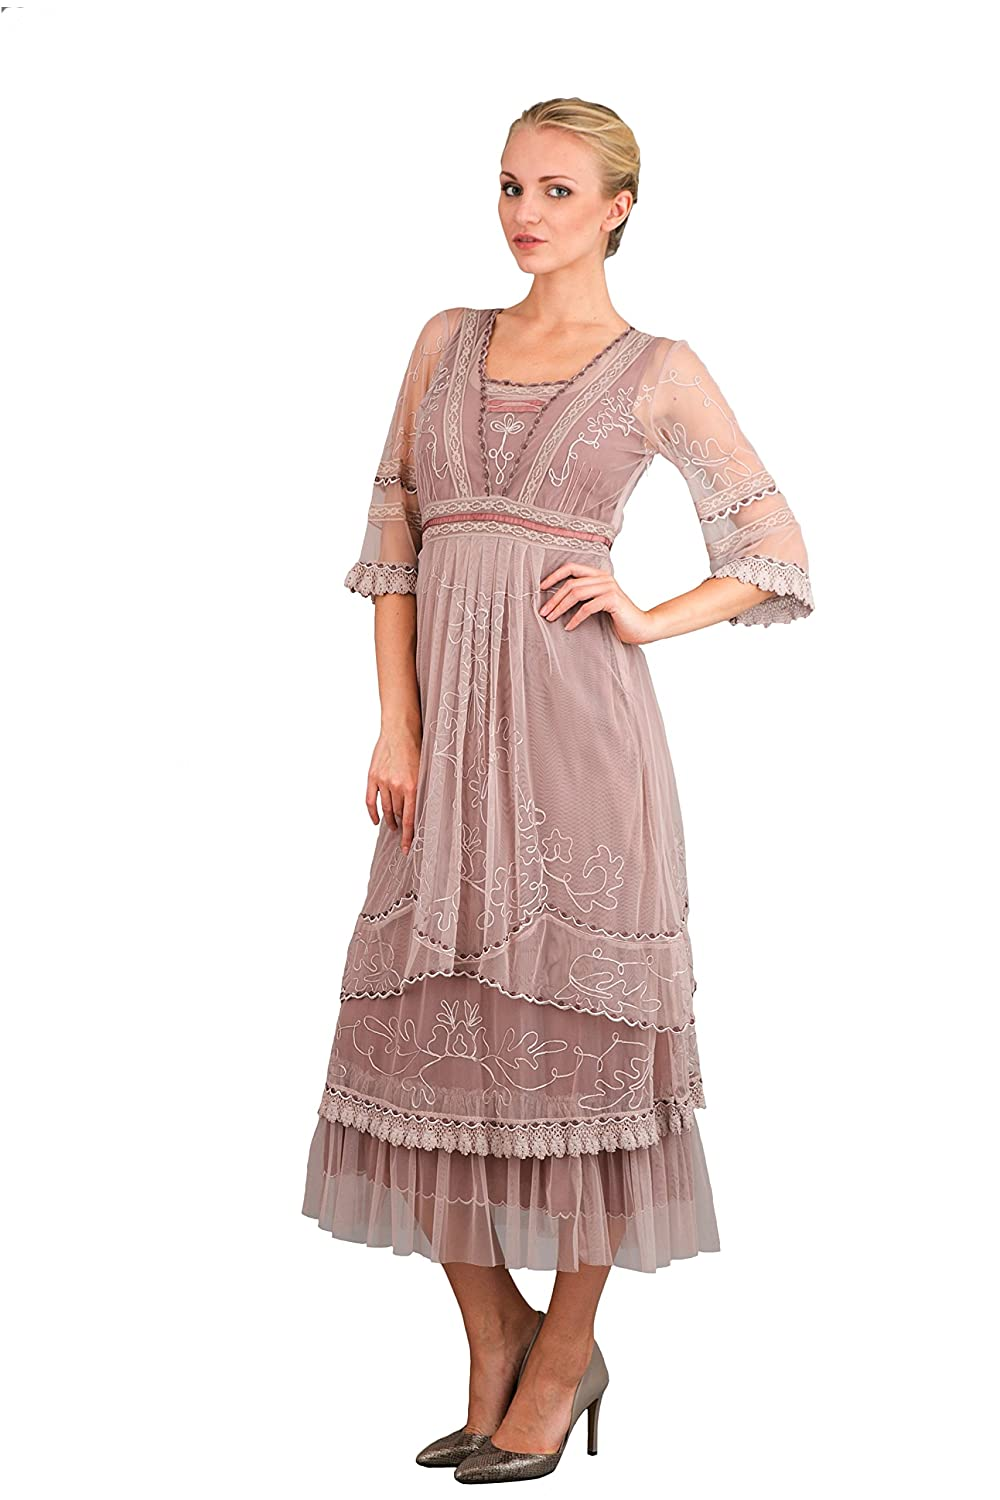 Buy Boardwalk Empire Inspired Dresses Art Deco Gatsby Party Dress in Amethyst $338.00 AT vintagedancer.com